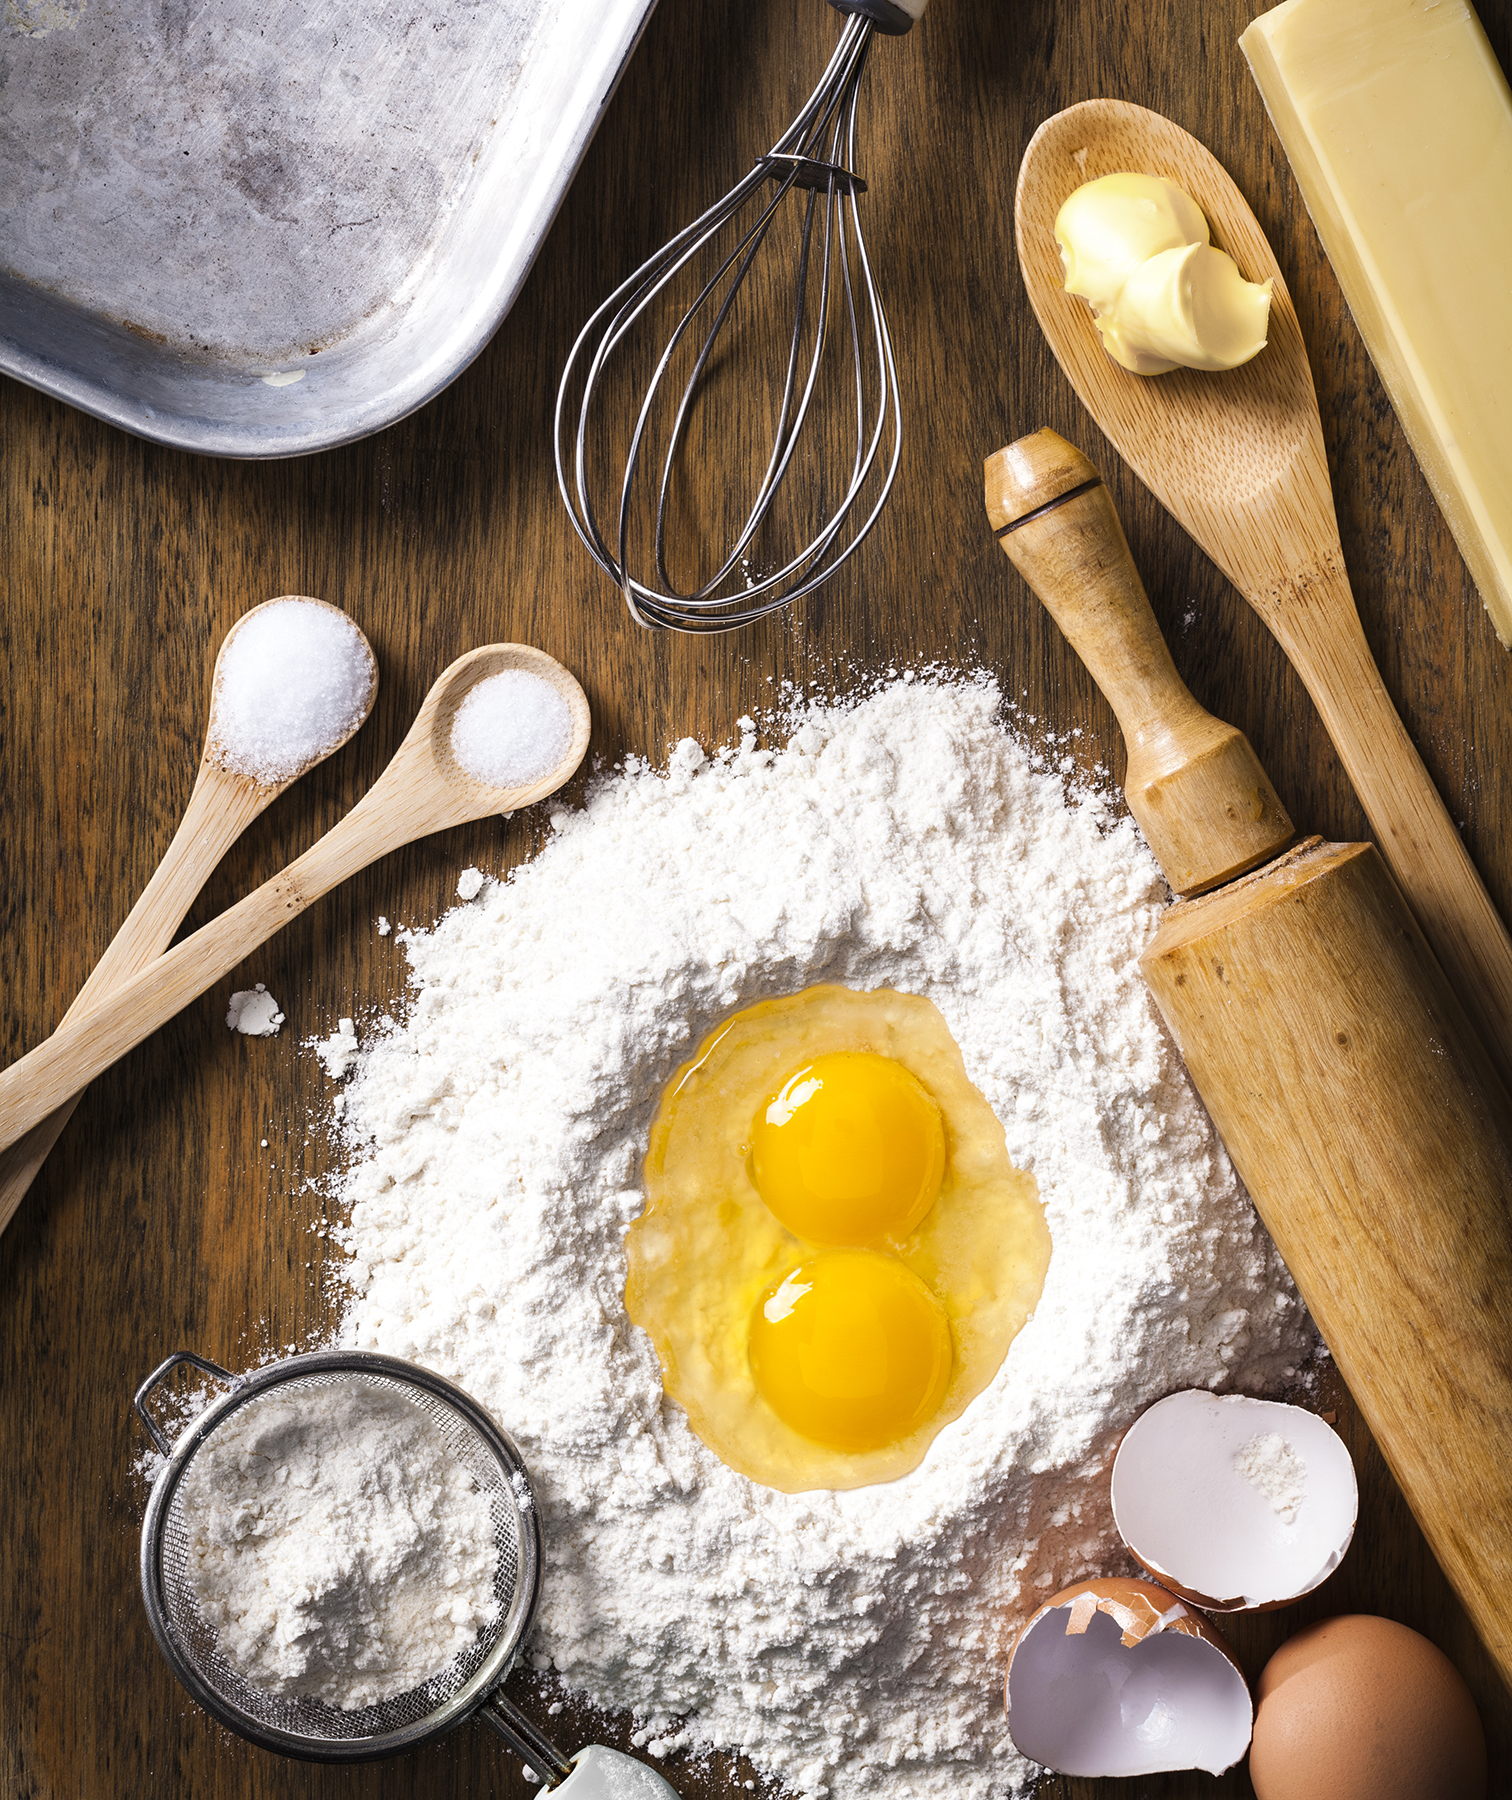 Baking ingredients and tools